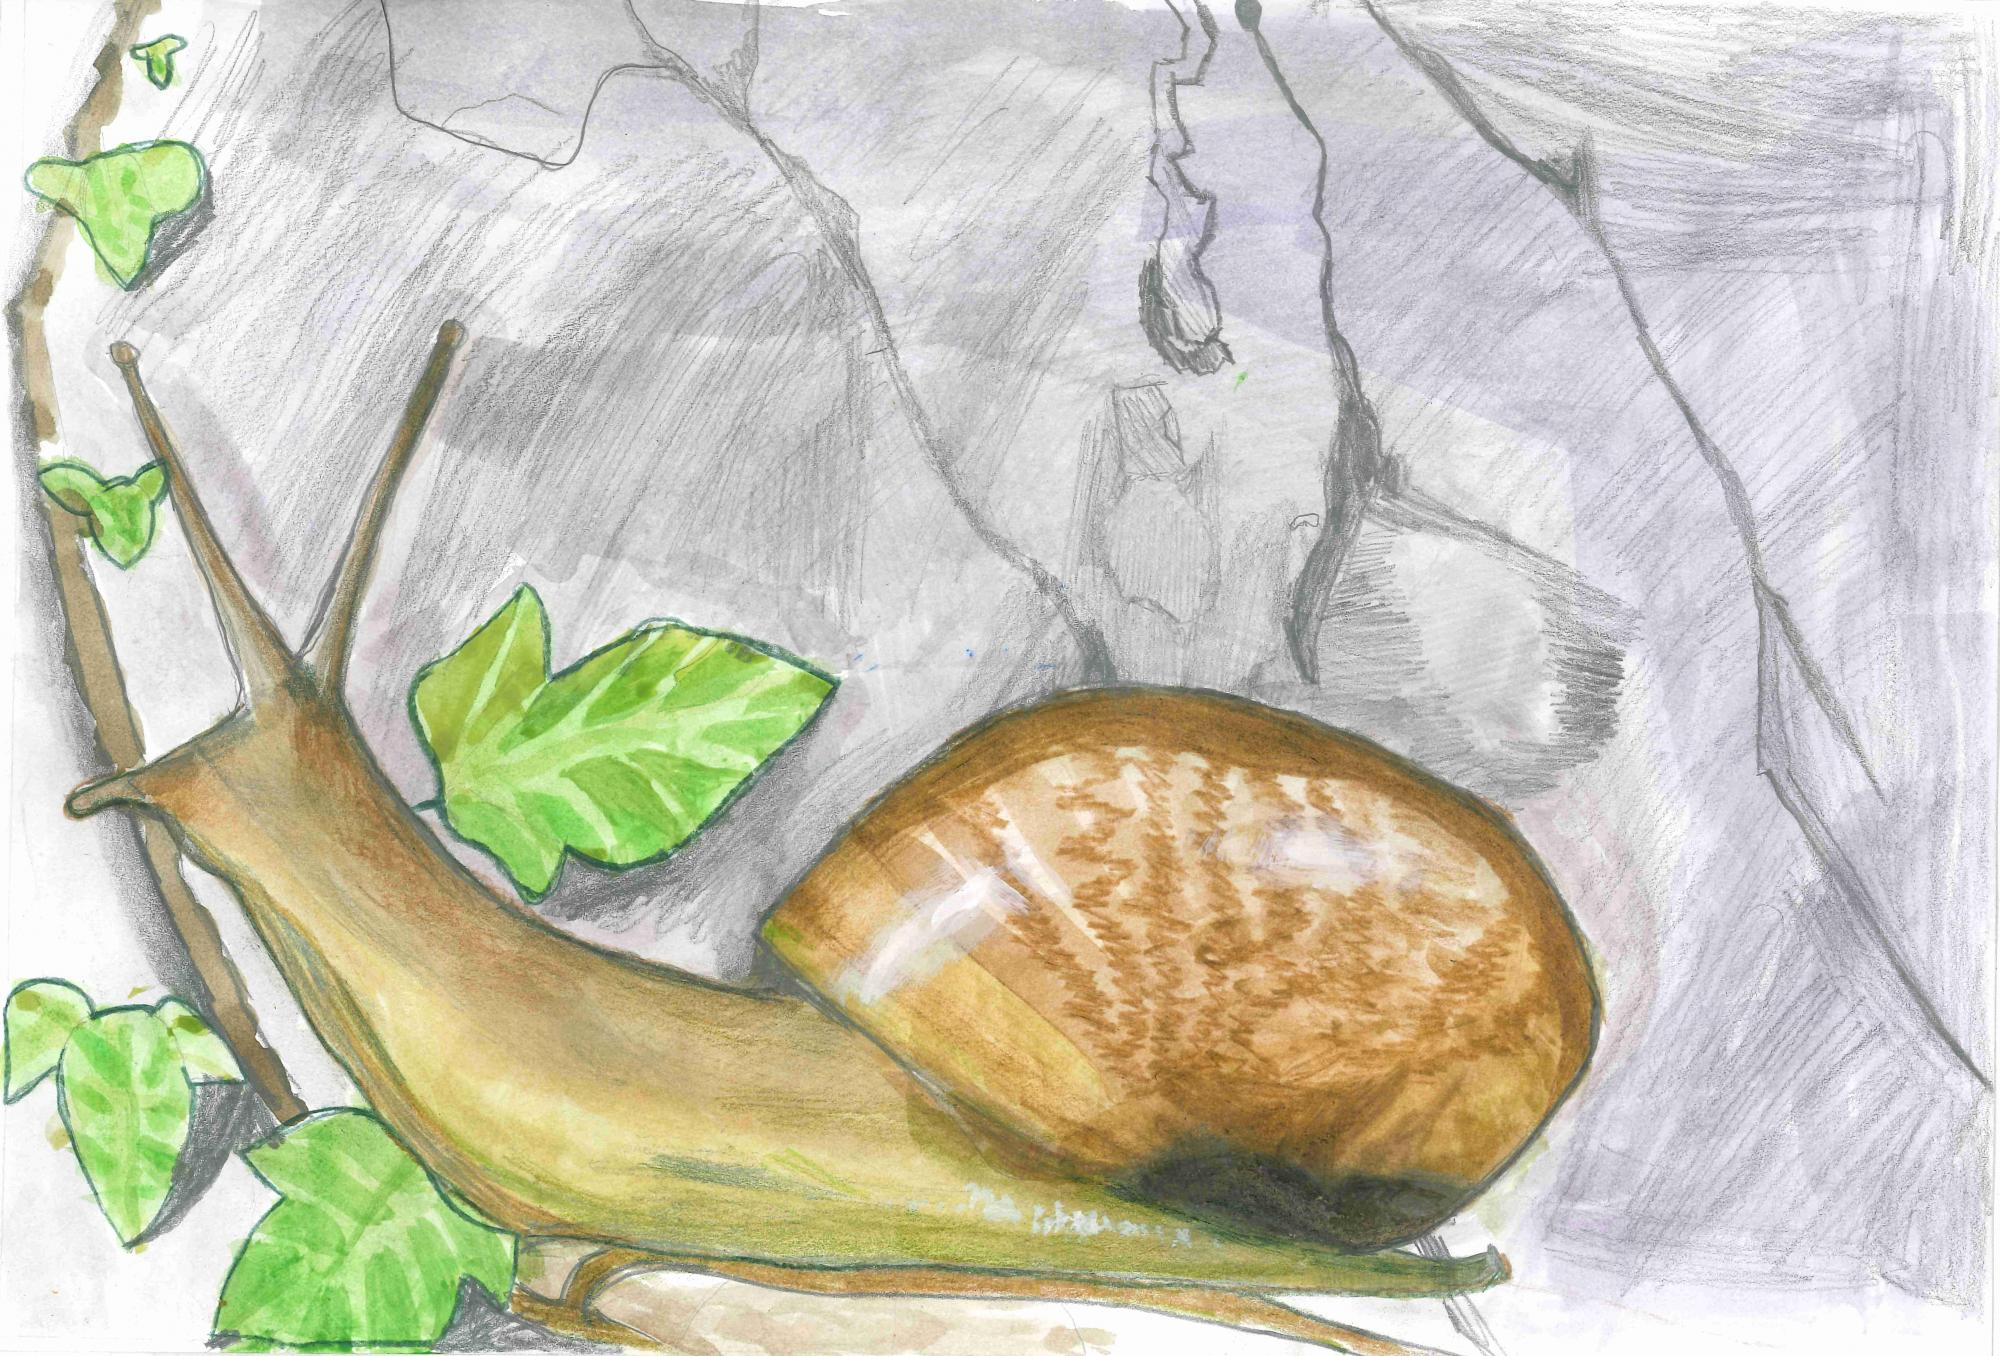 """Land Snail"" Ethan Kim, age 7. Little Neck, New York. United States. River of Words 2018 Finalist."